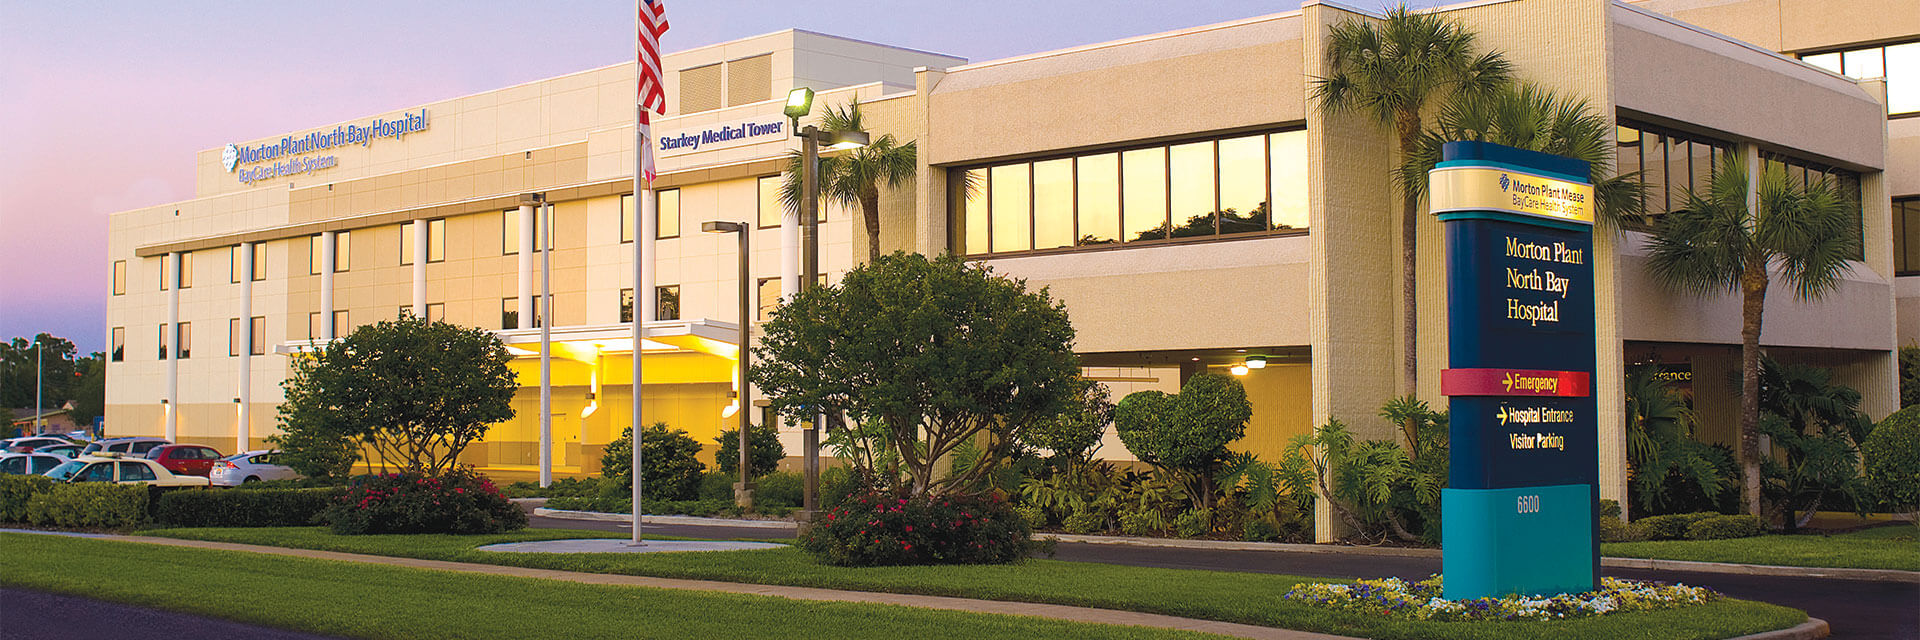 Morton Plant North Bay Hospital building in New Port Richey